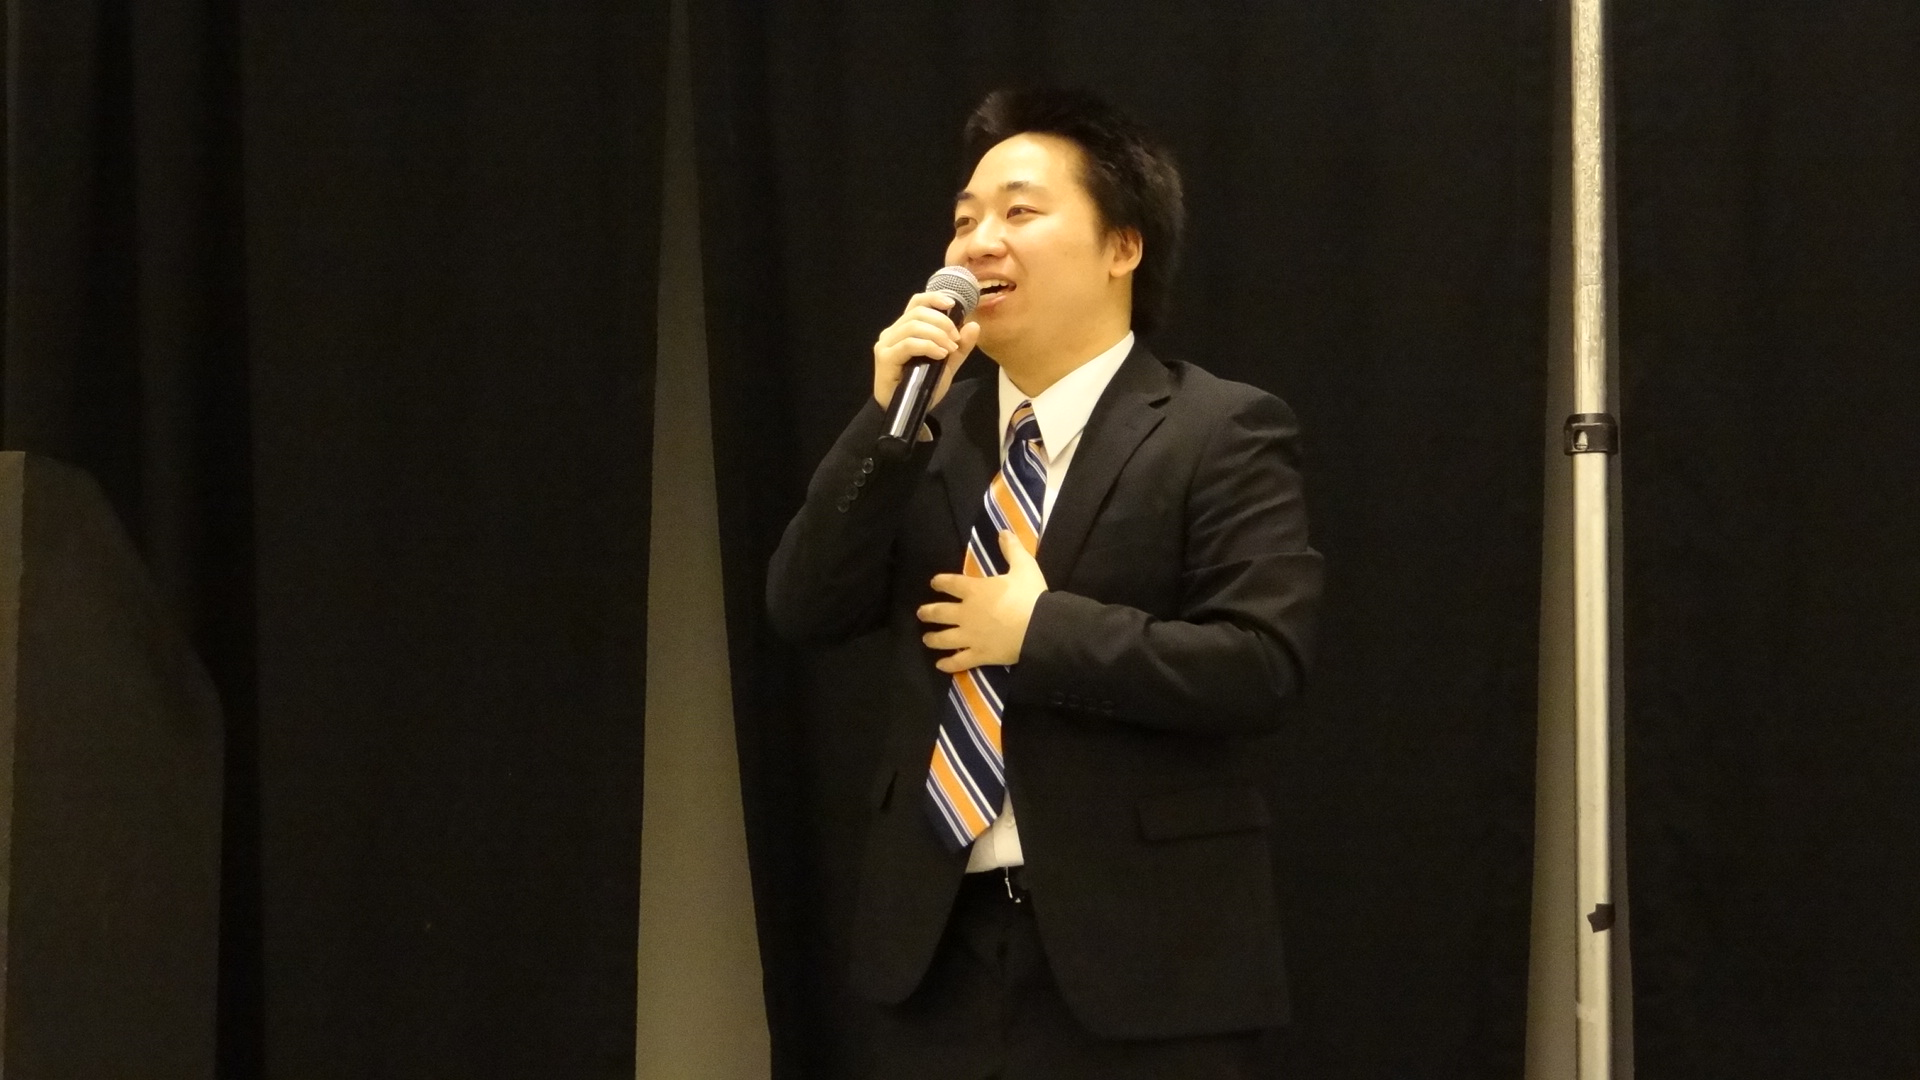 Takafumi Mashiko welcomes everyone to this event.